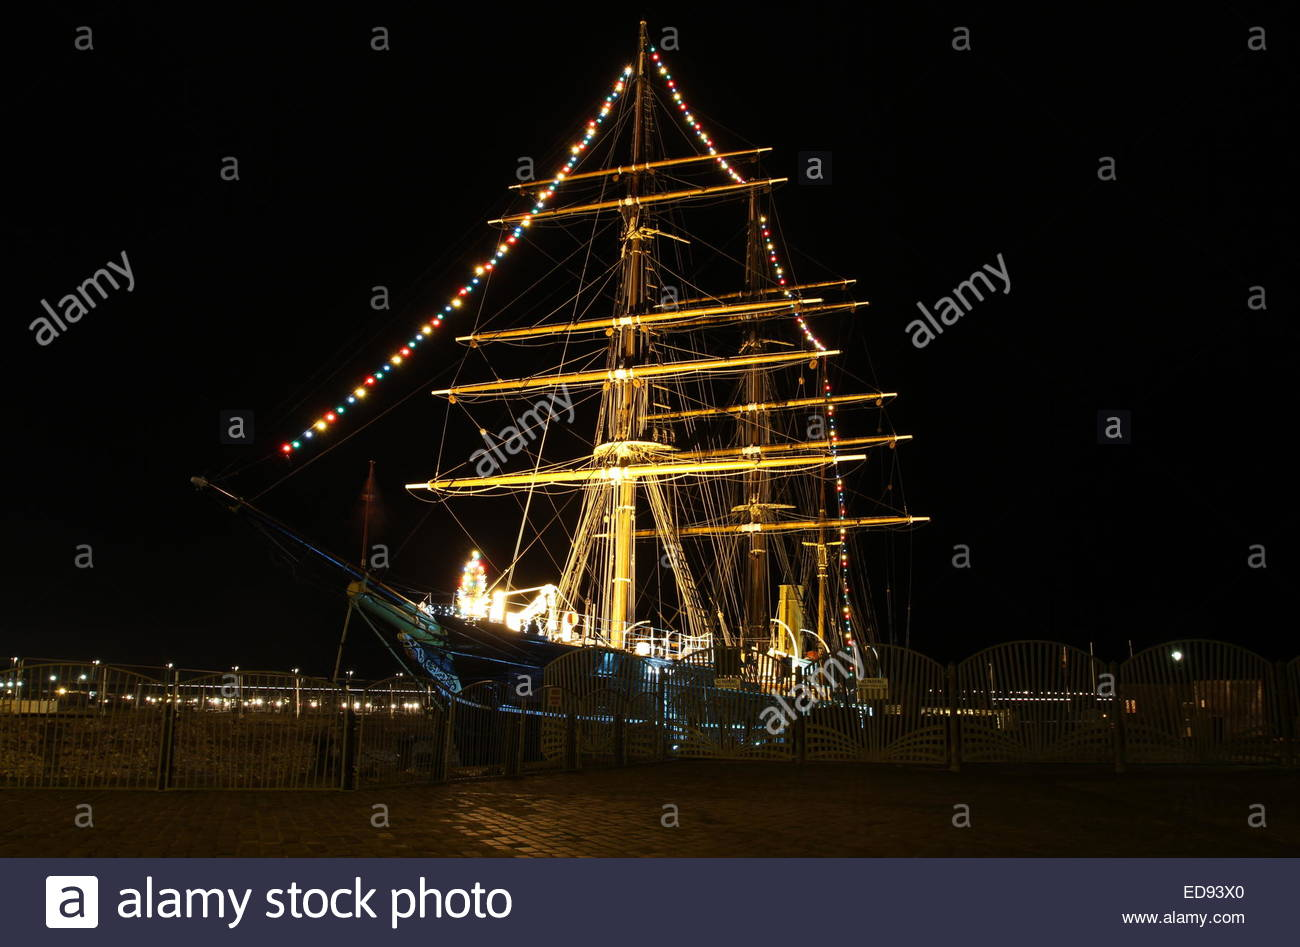 RRS Discovery at night Discovery Point Dundee Scotland  December 2014 - Stock Image